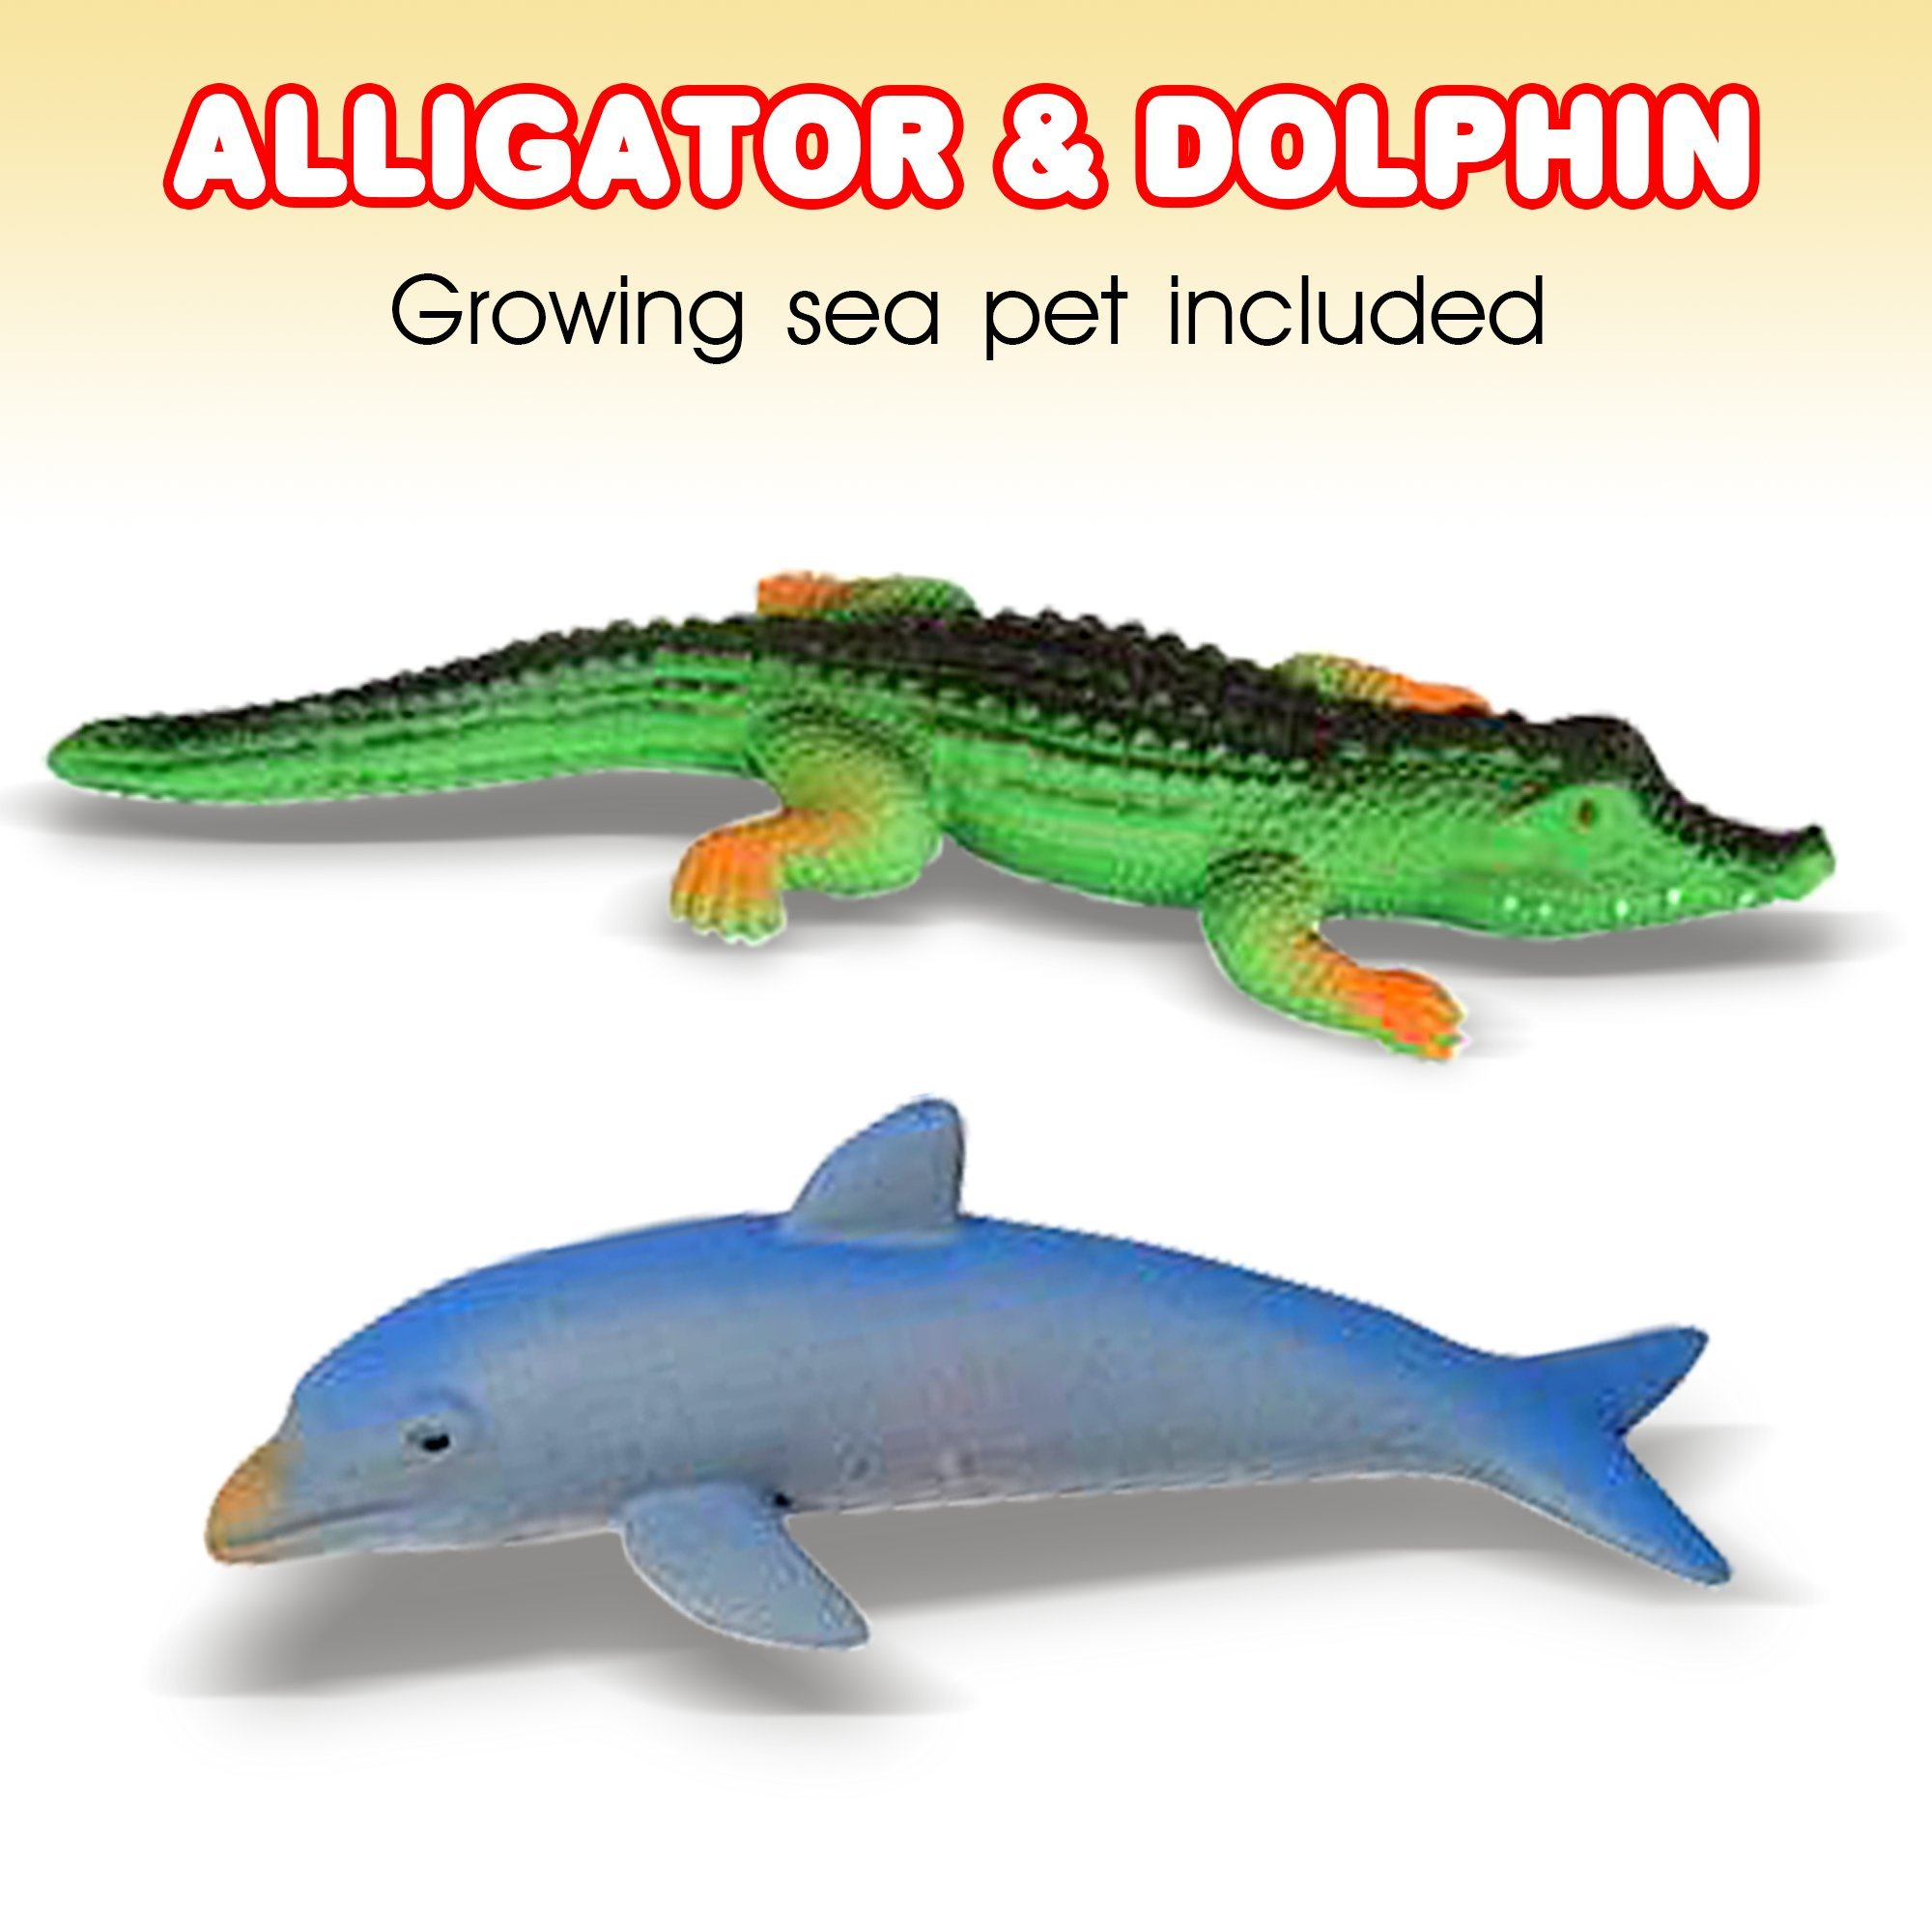 ArtCreativity Growing Sea Animals 6 Different Water Expanding Sea Creatures  Grows 6X Larger   Amazing Sensory Jelly-Like Toy   Fun & Educational Gift for Boys & Girls. by ArtCreativity (Image #4)